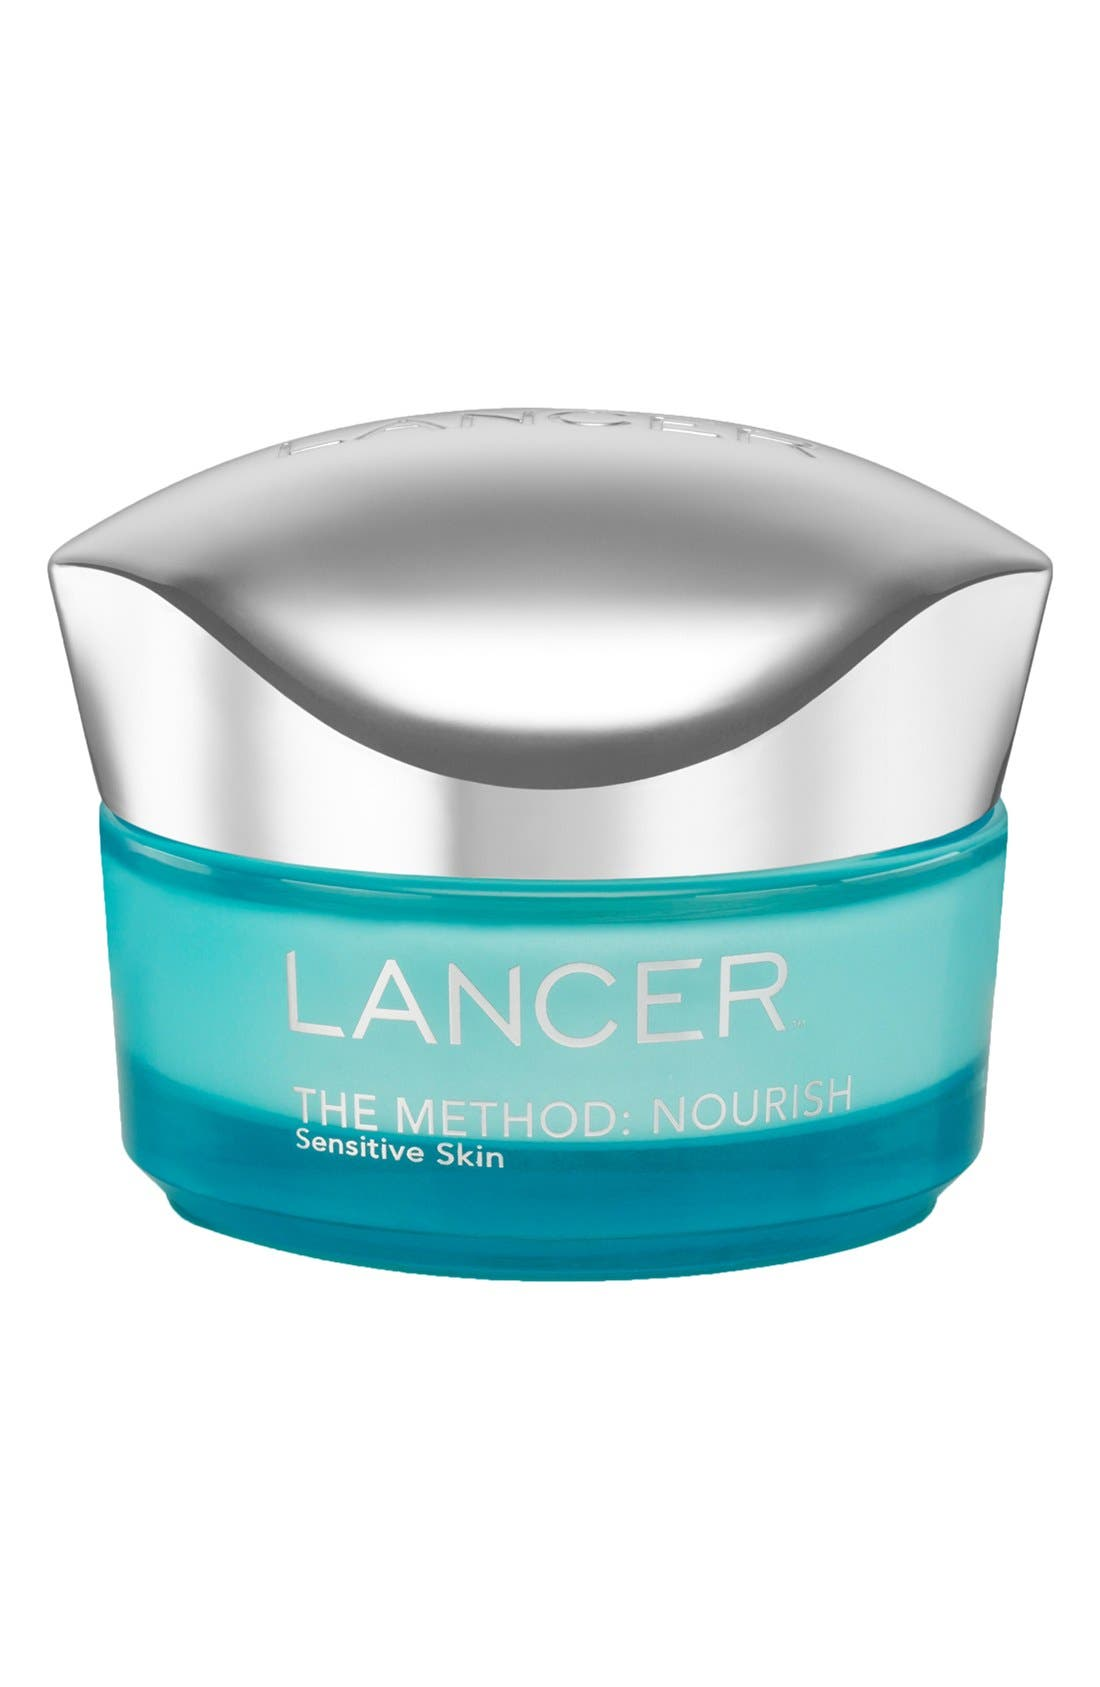 LANCER Skincare The Method - Nourish Sensitive Skin Moisturizer